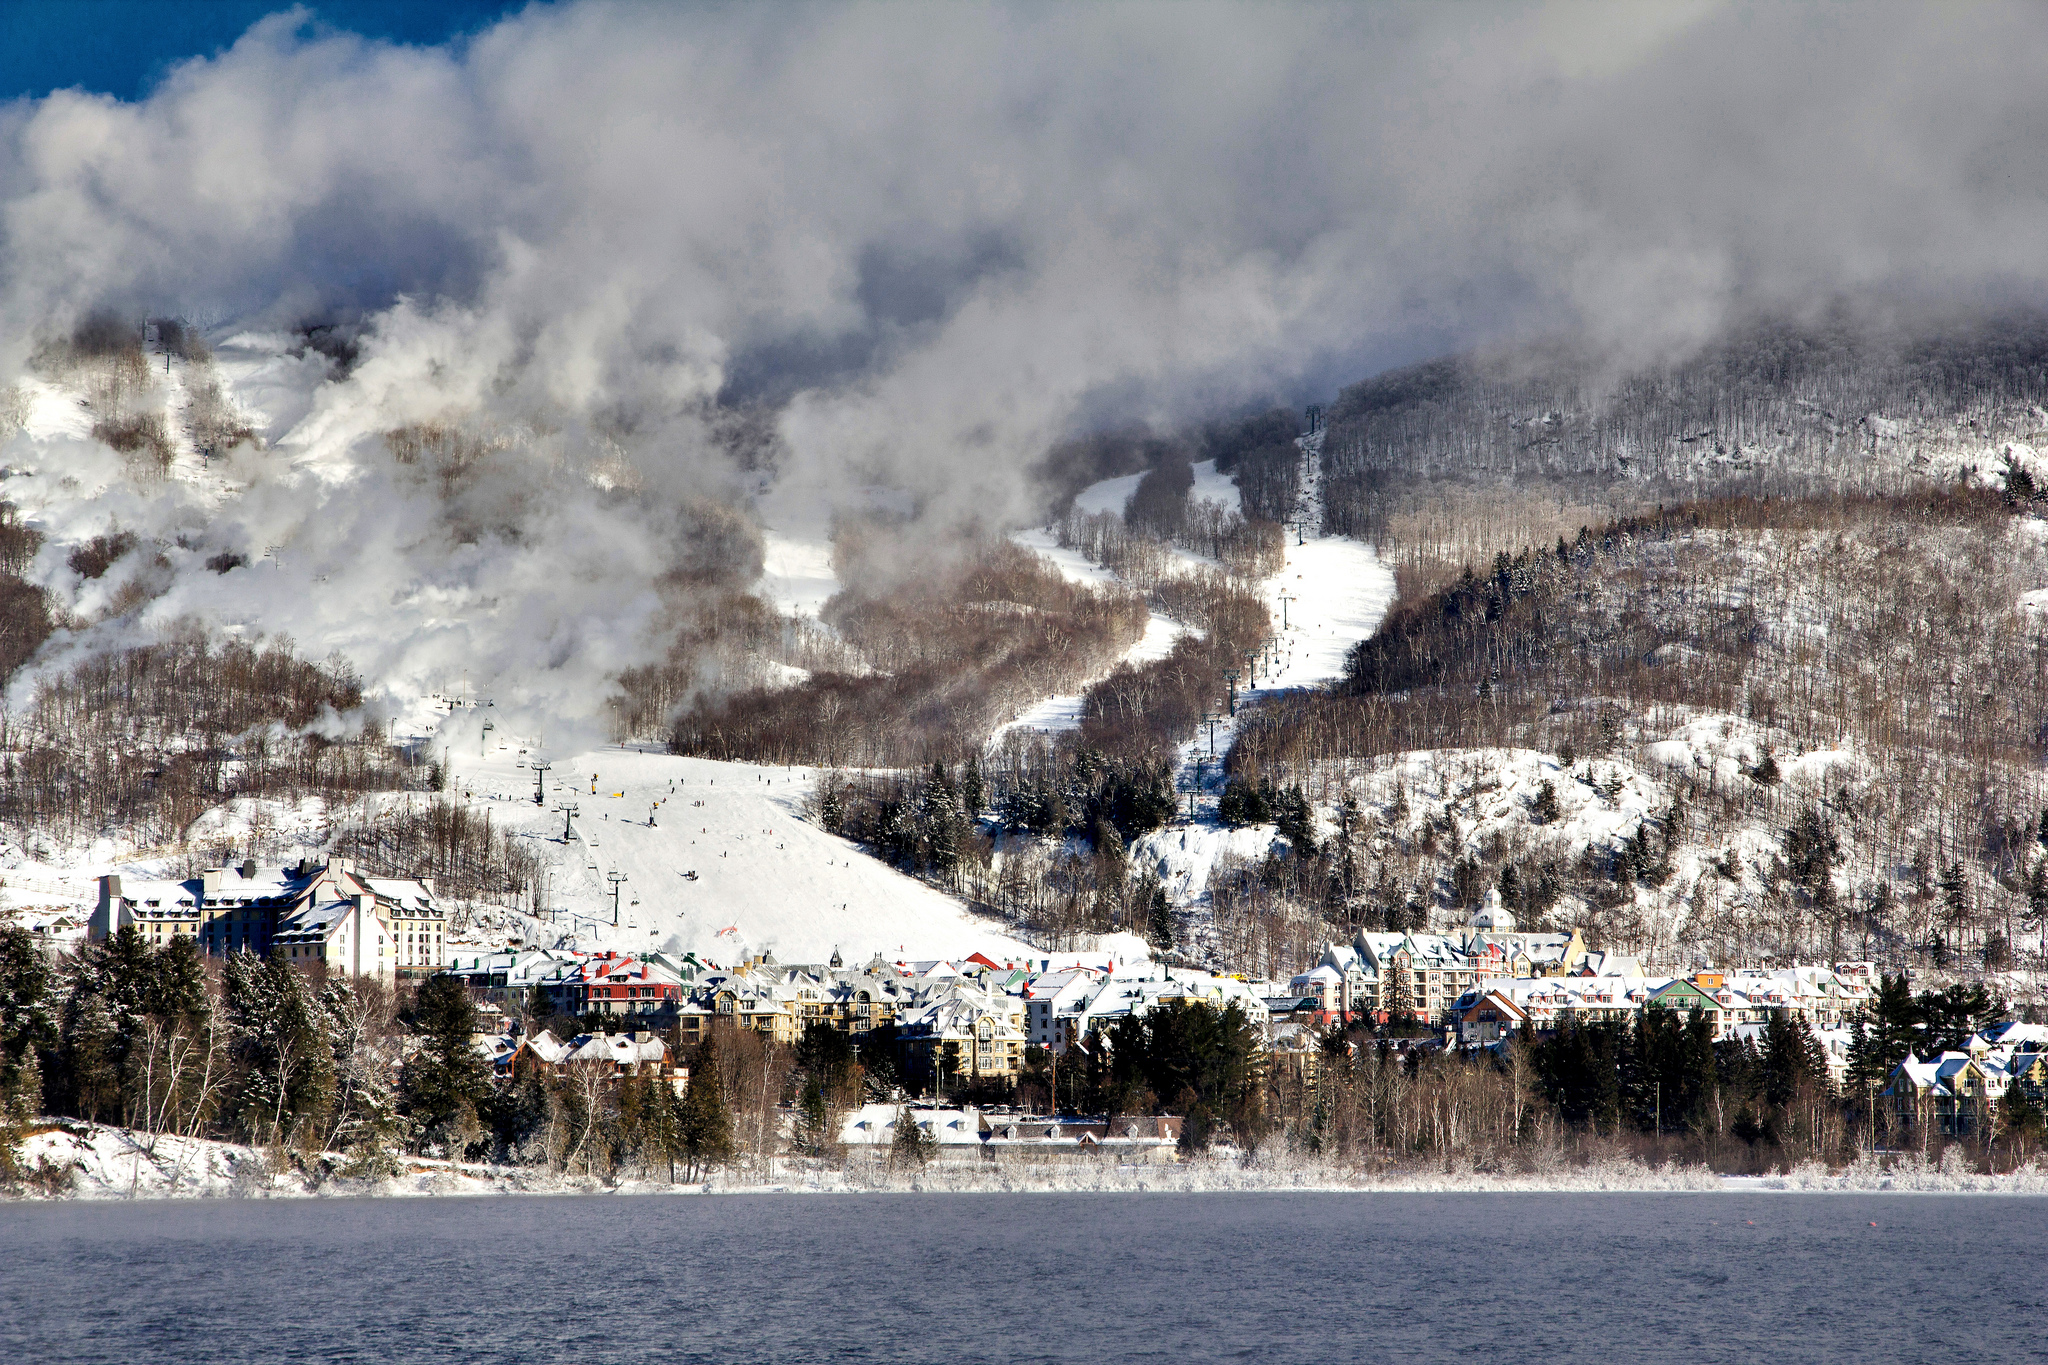 The magnificent ski slopes are a big must do in Mont Tremblant ... photo by CC user arturstaszewski on Flickr